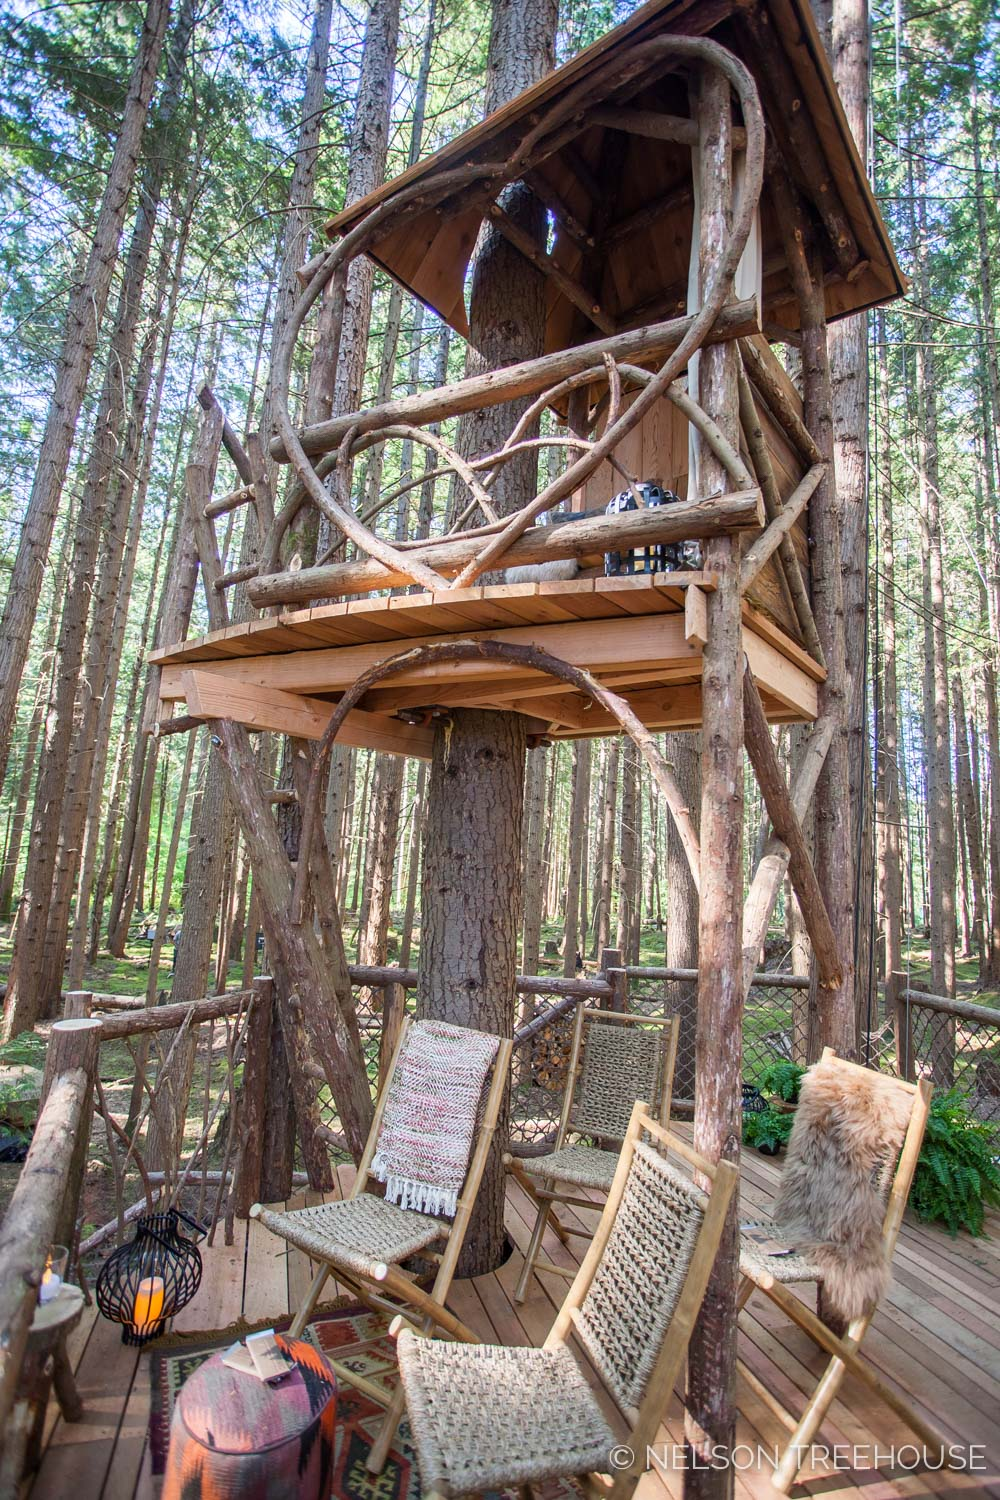 Treetop-Movie-Theater-2018-Nelson-Treehouse-746.jpg